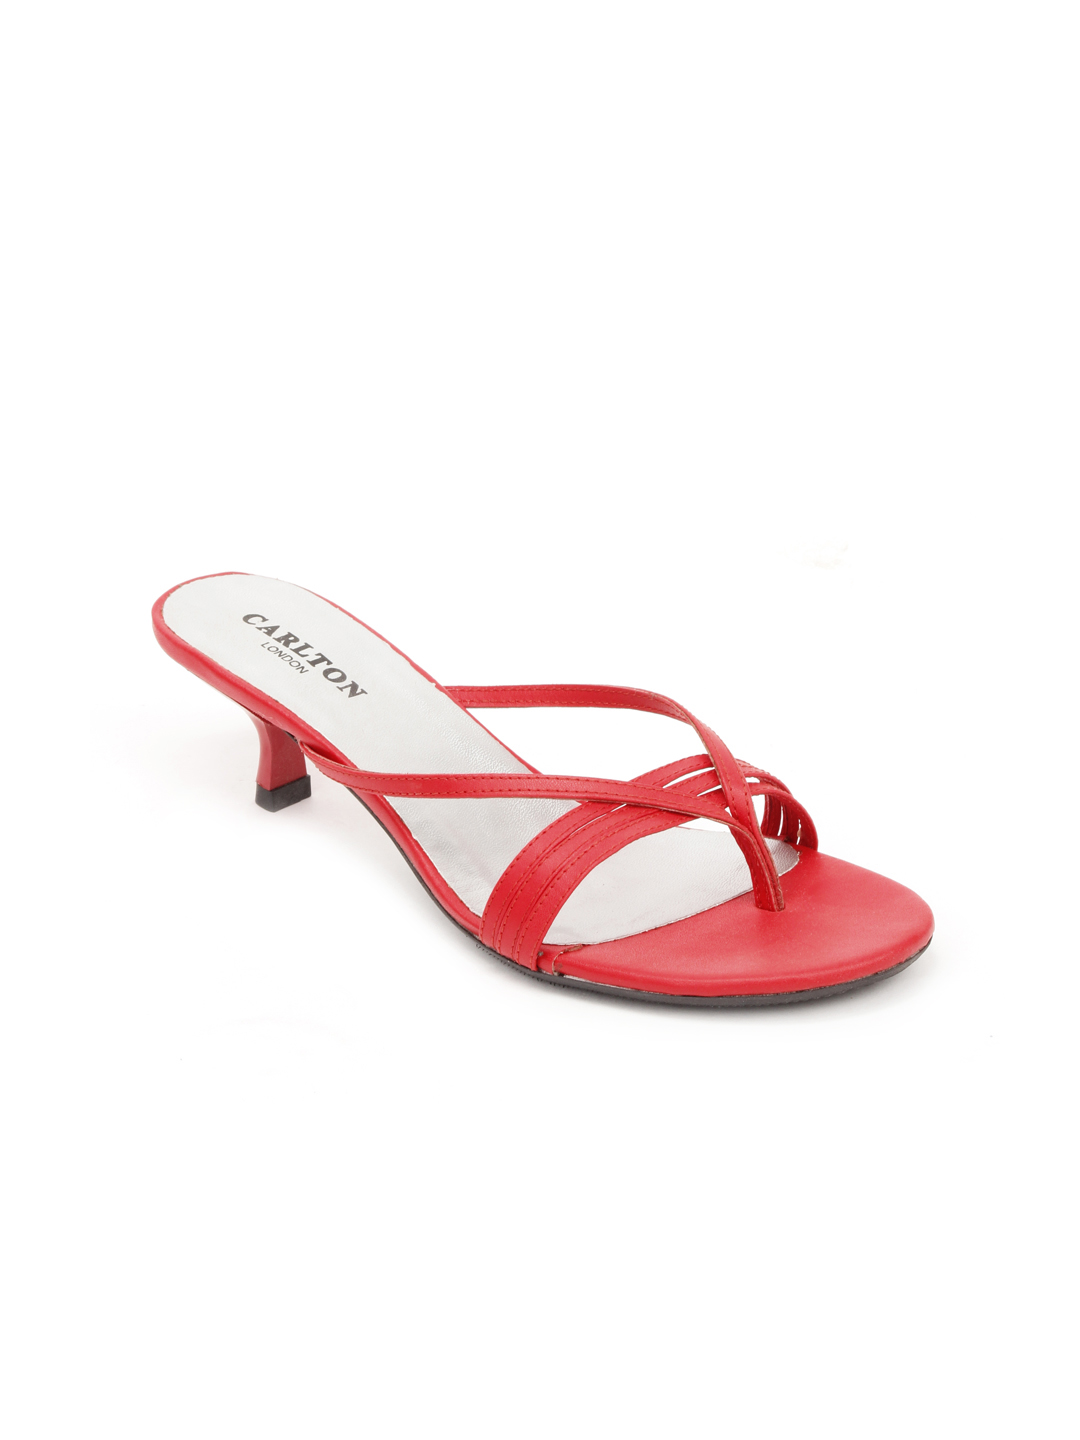 Carlton London Women Red Sandals